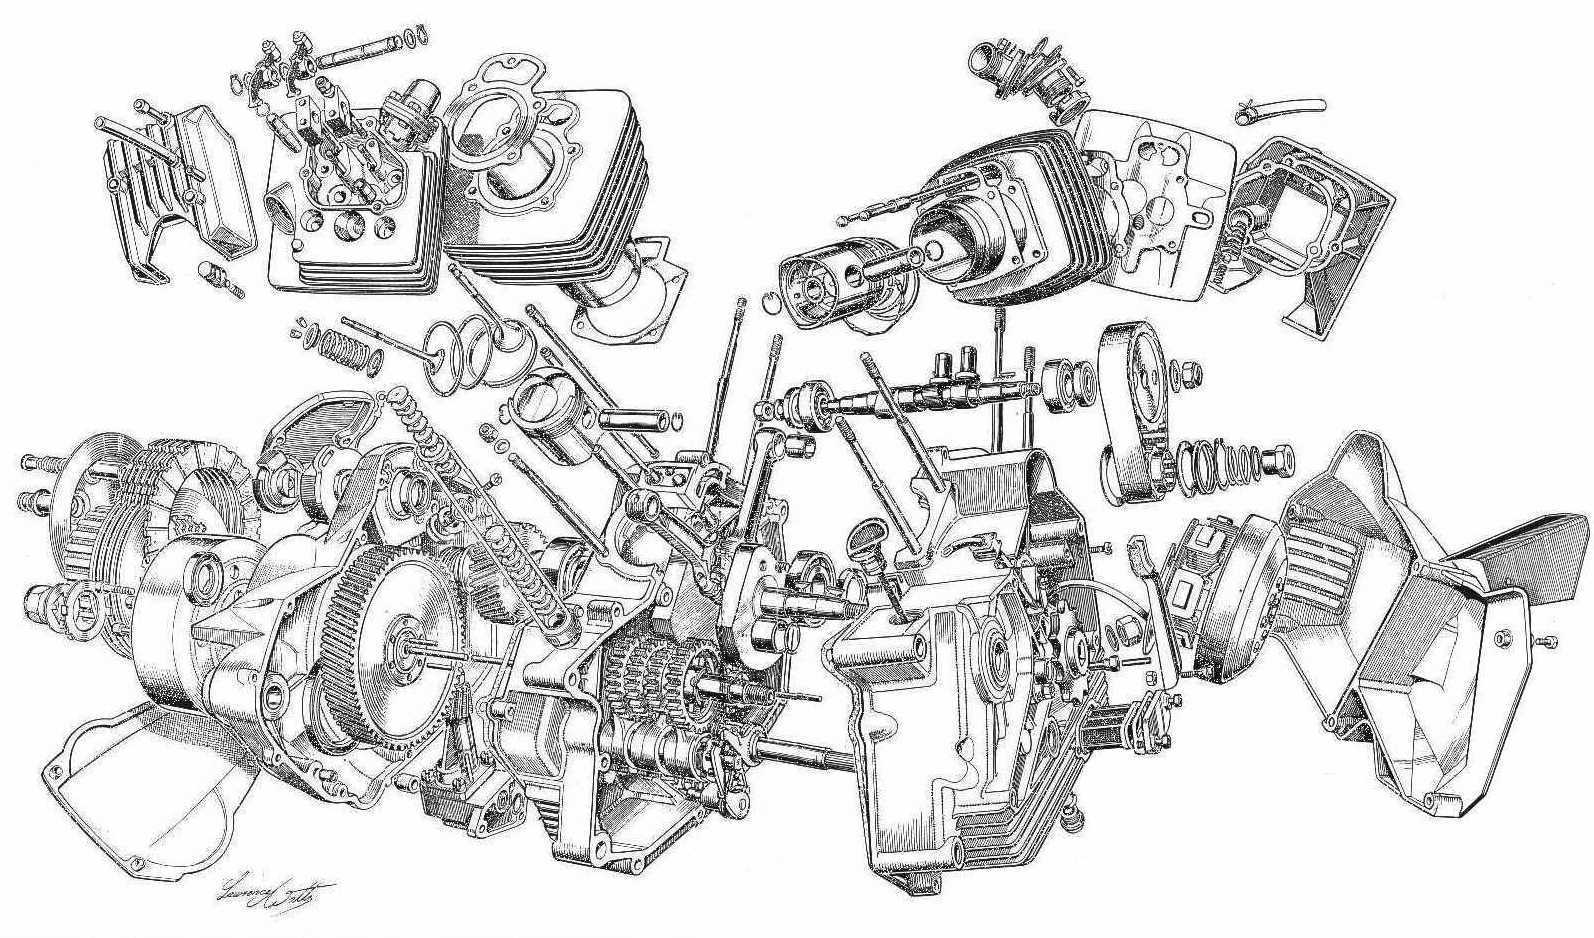 Wrg 4423 Harley Davidson V Twin Engine Diagrams Cam Diagram Chain Tensioner Problems Wiring Odicis Nissan